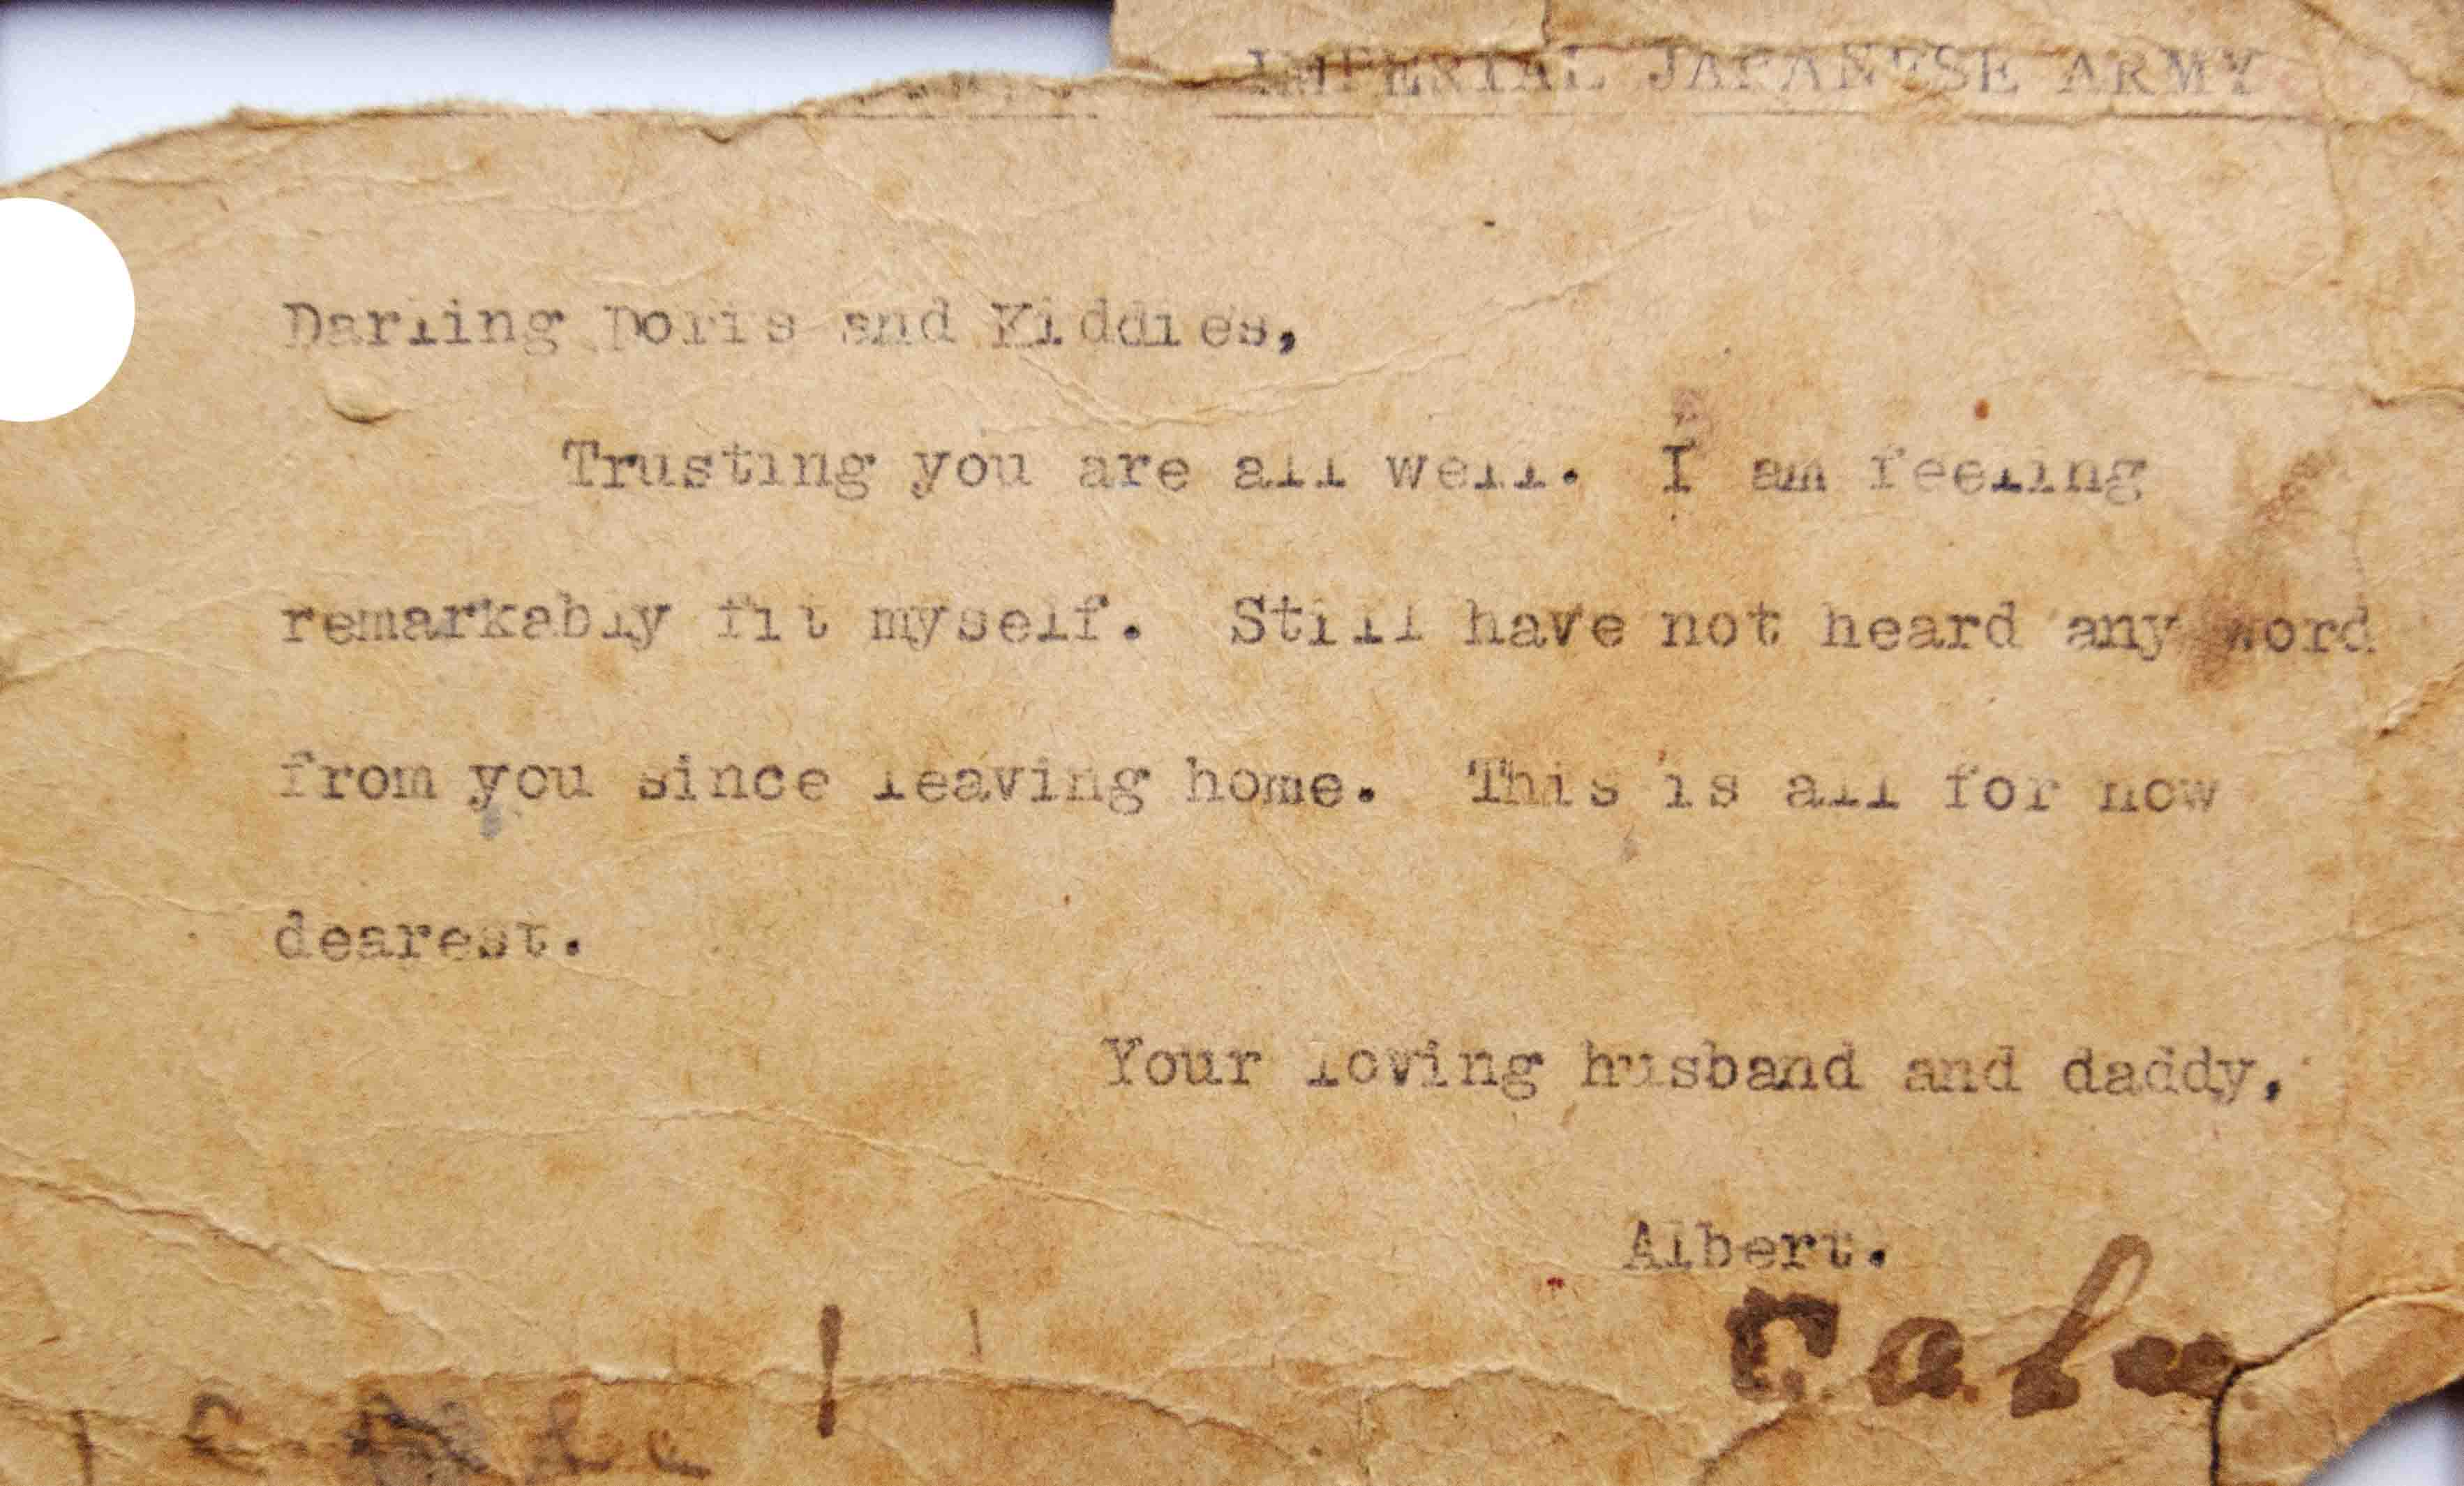 Letter from POW Chelsea Pensioner home